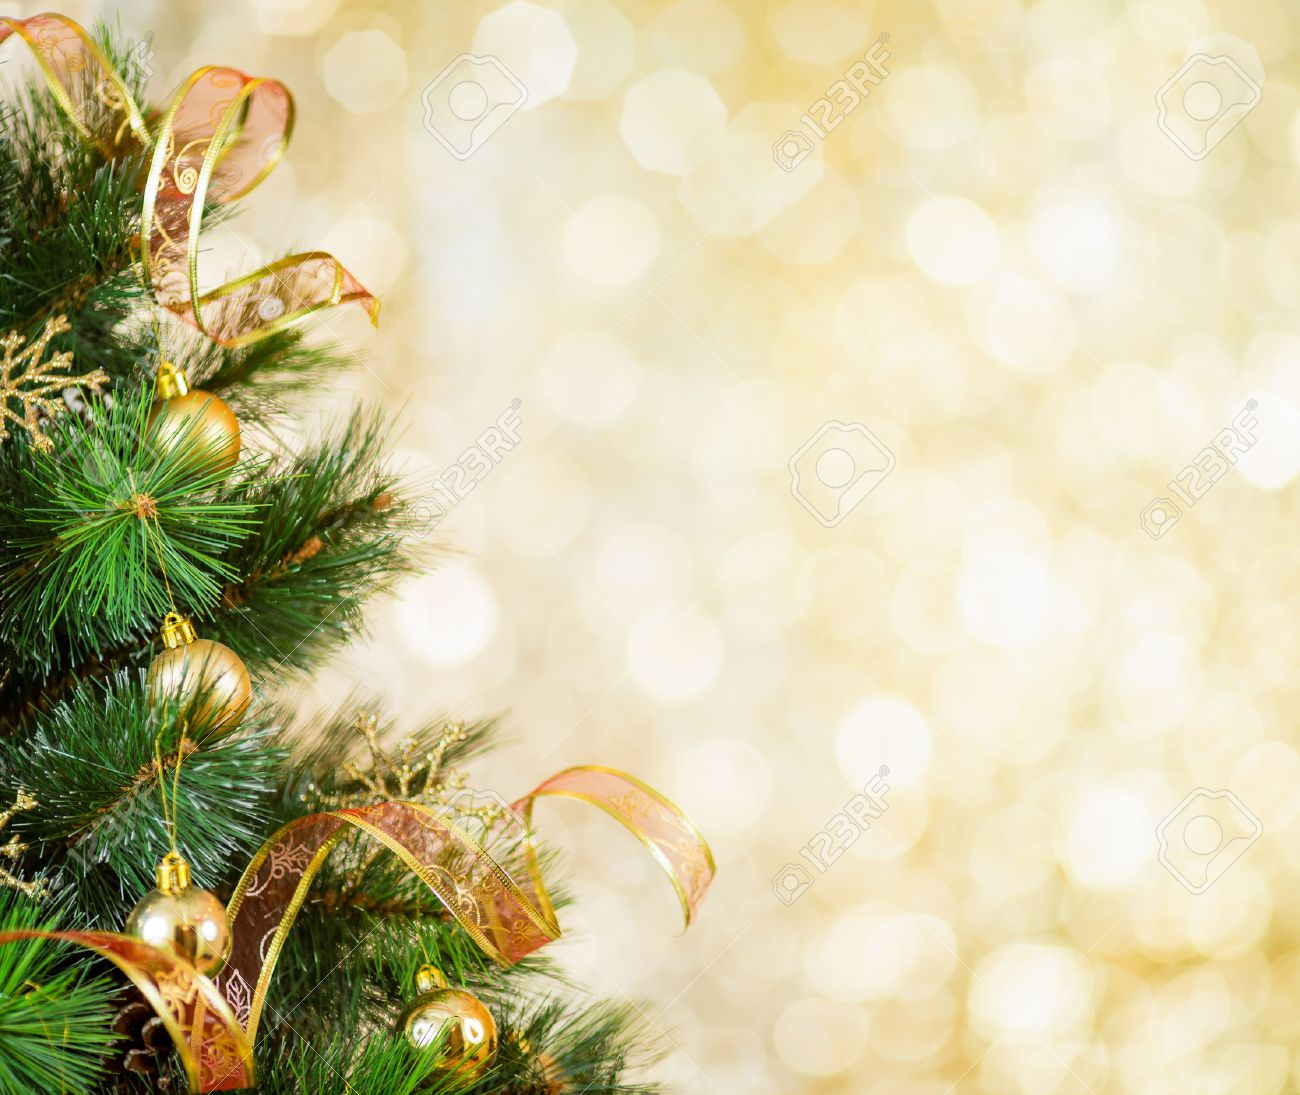 Christmas Tree Backgrounds.Golden Christmas Tree Background